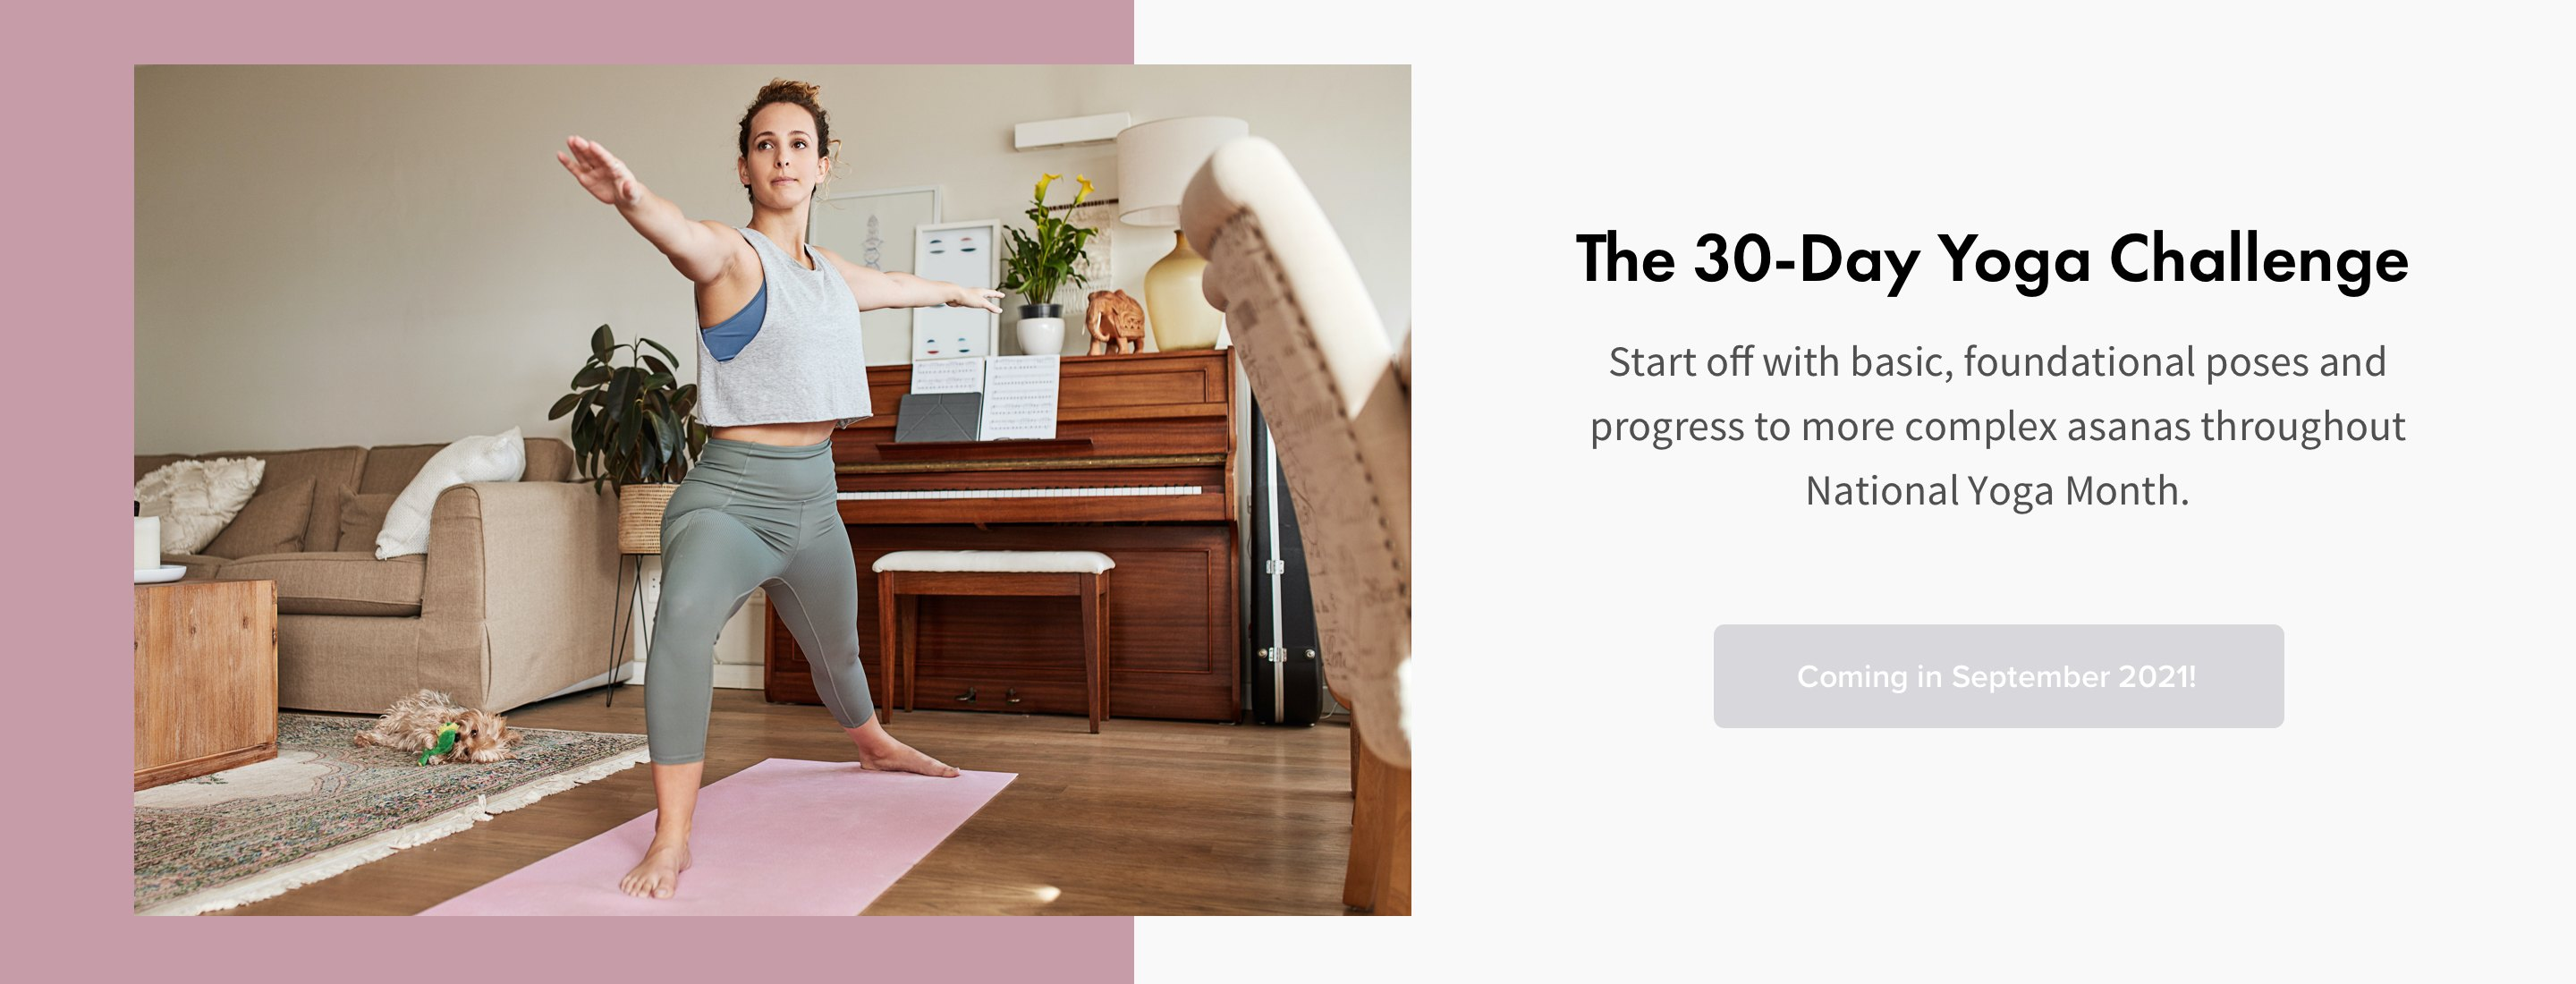 woman doing yoga in living room on pink yoga mat on wood floor